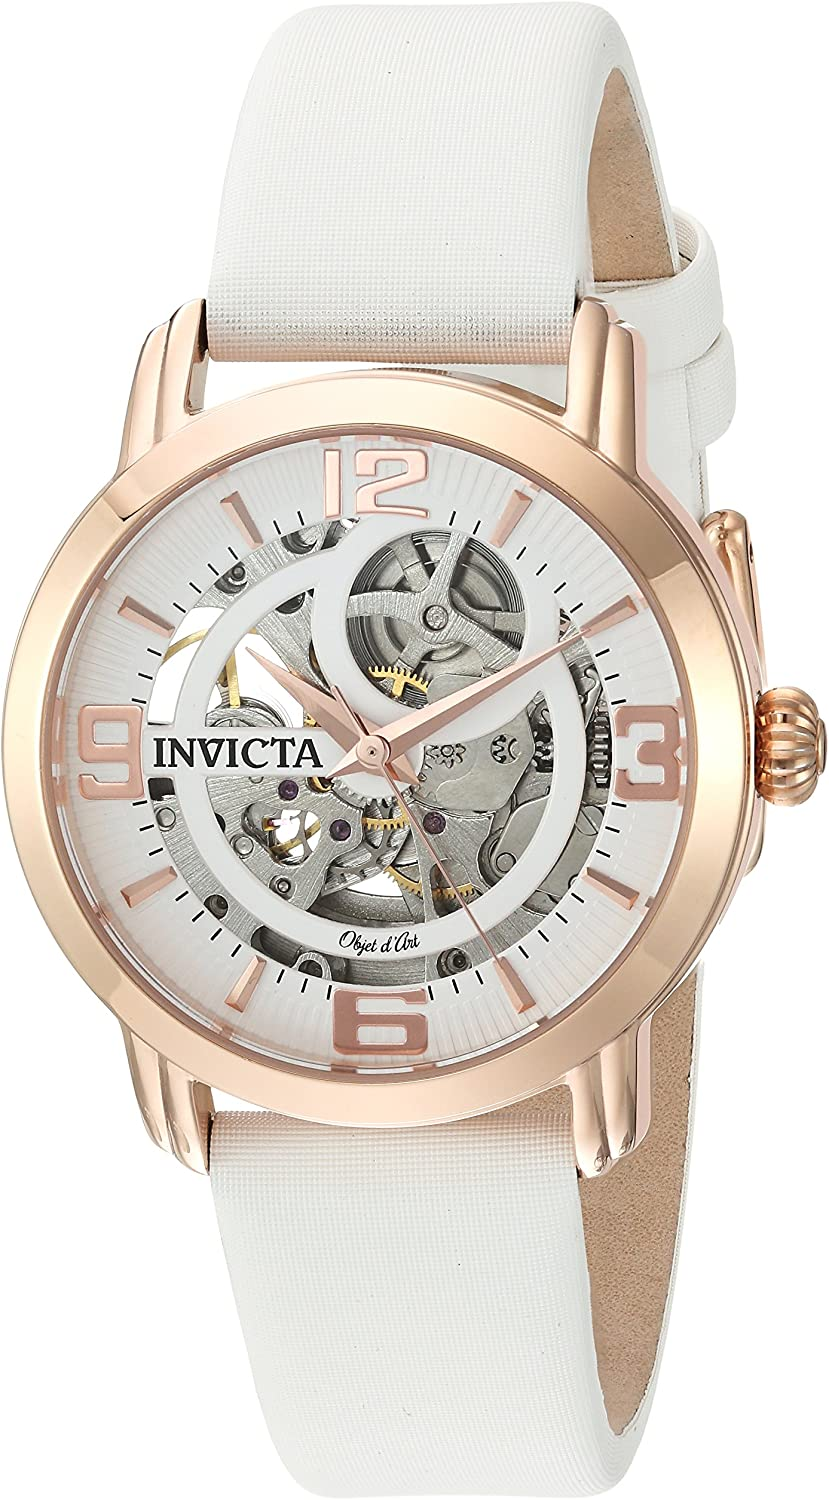 Invicta Women's Objet d'Art Stainless Steel Automatic-self-Wind Watch with Satin Strap, White, 18 (Model: 22655)